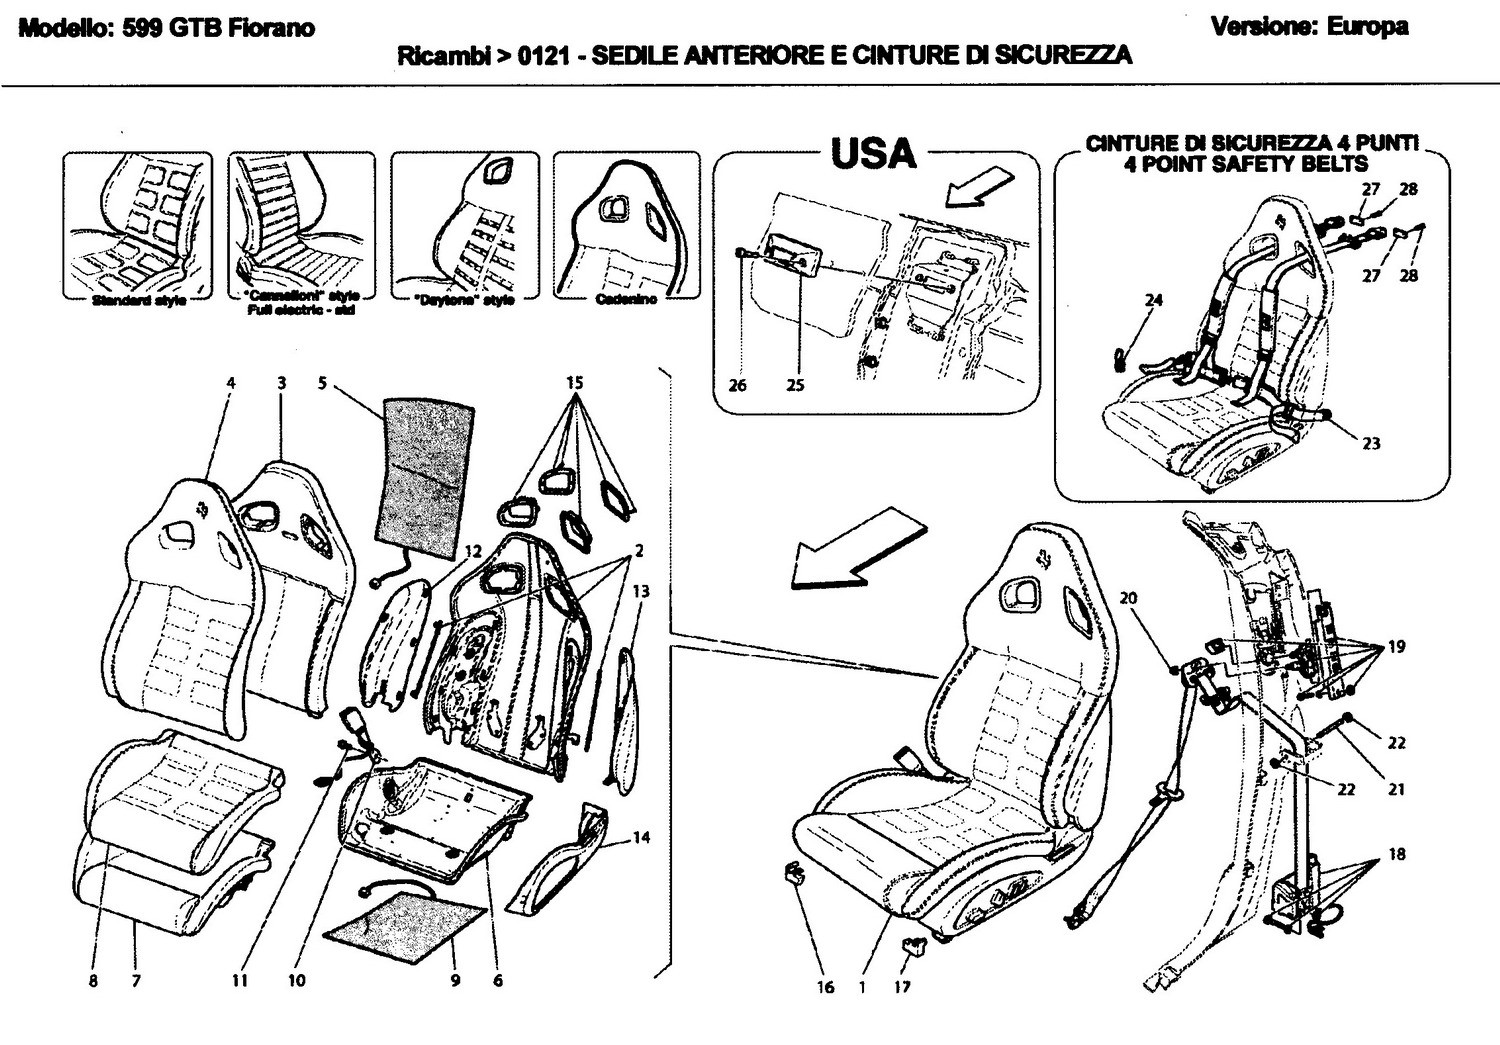 FRONT SEAT AND SEAT BELTS